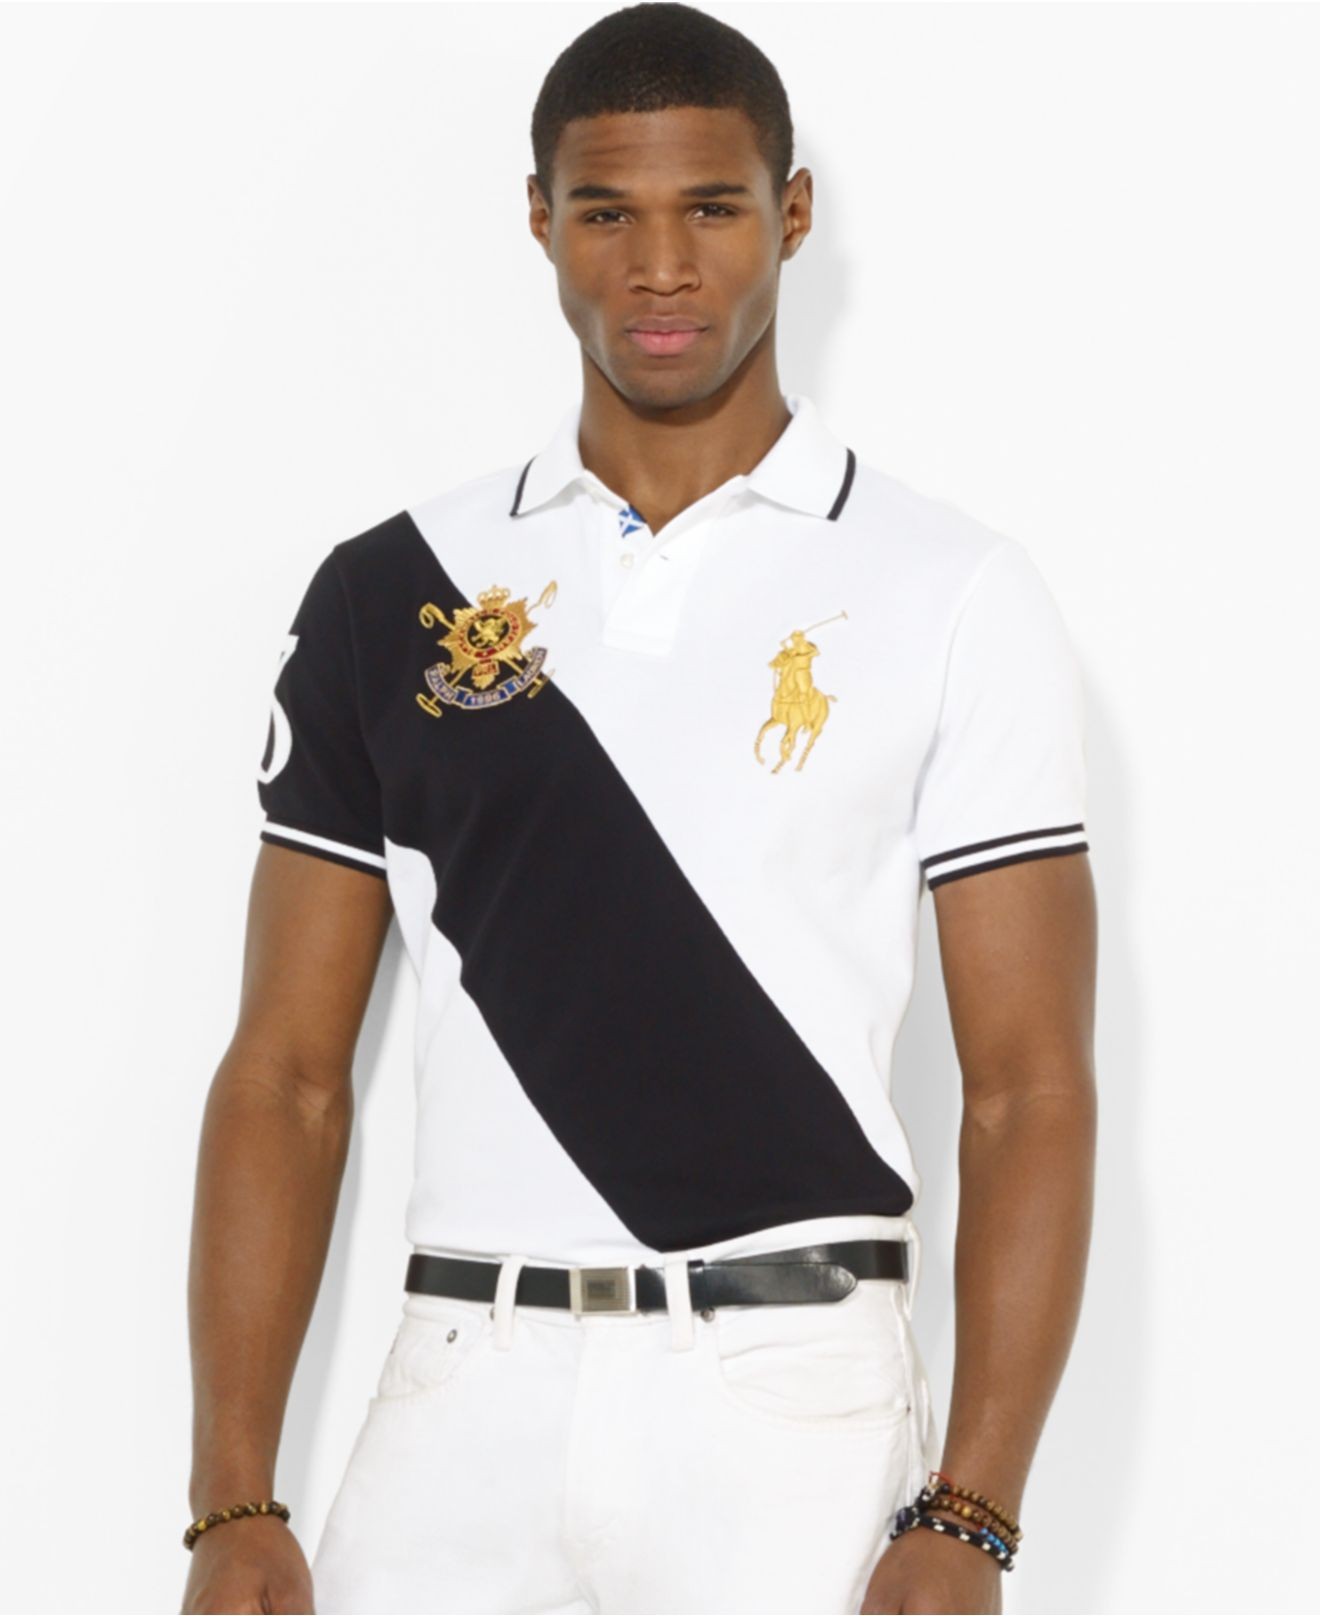 lyst polo ralph lauren black watch custom fit banner striped polo in black for men. Black Bedroom Furniture Sets. Home Design Ideas